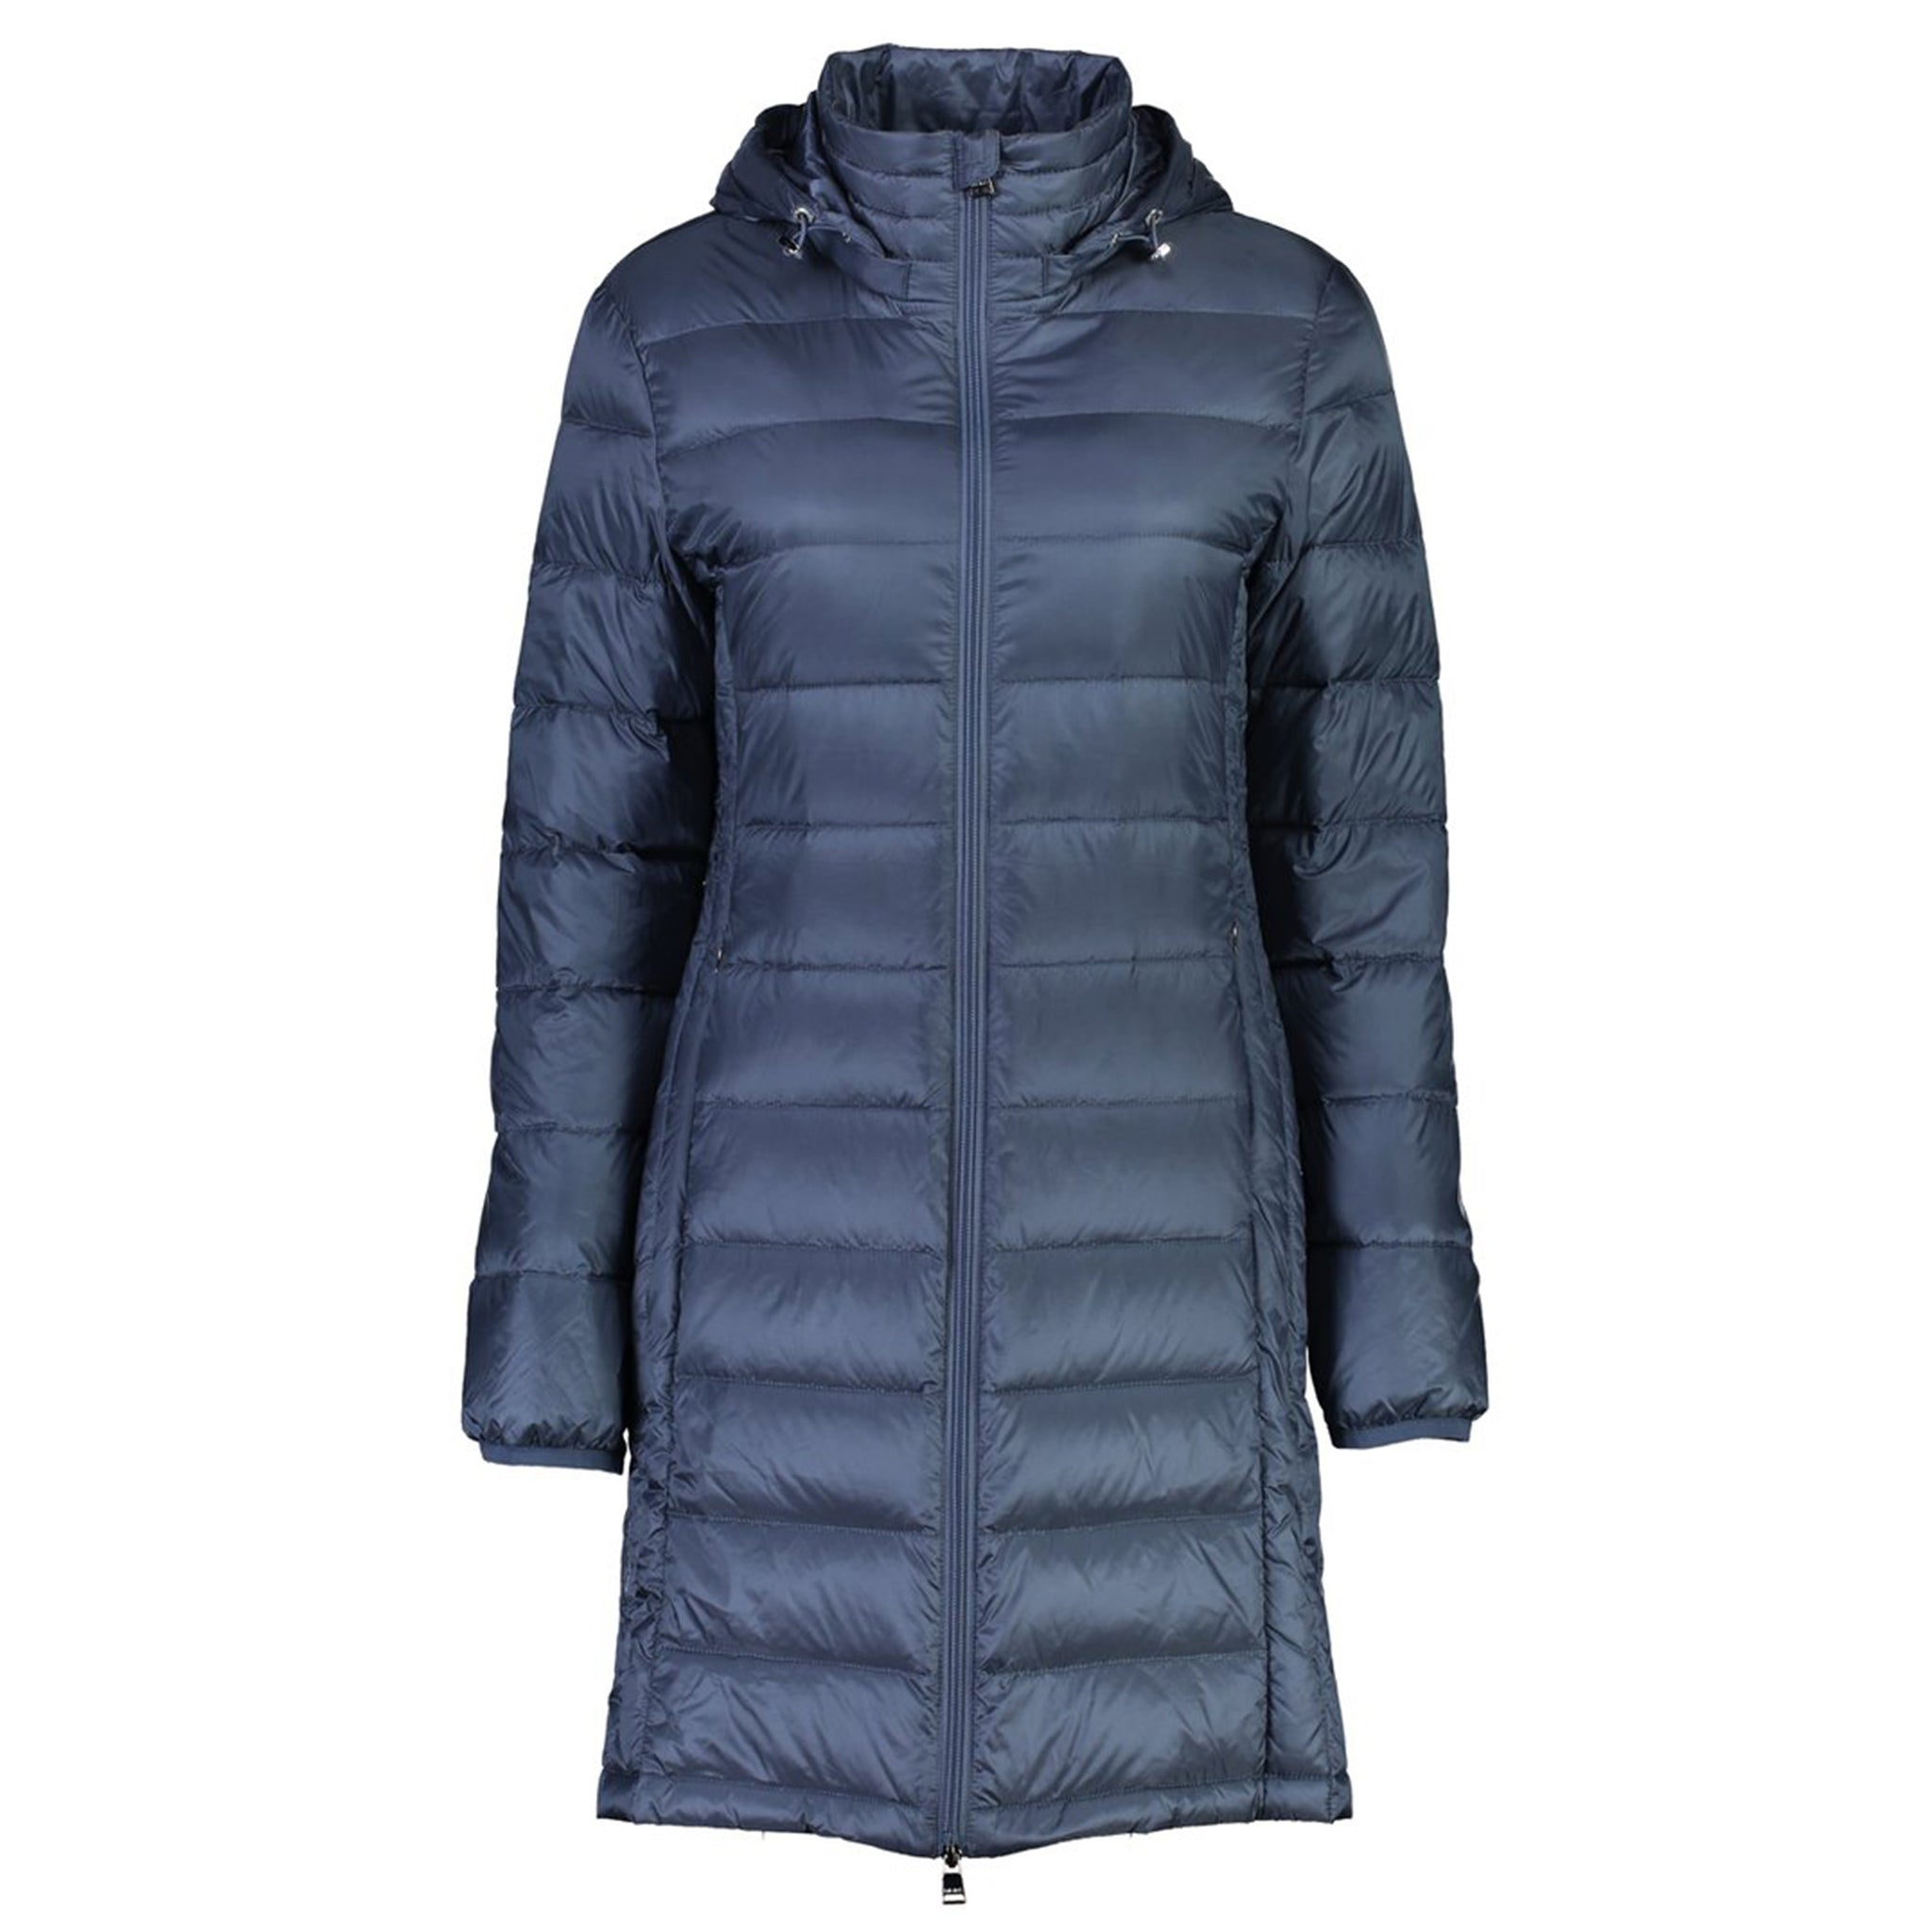 The Sarah lightweight down coat by Moke is a classic 3/4 length jacket.  Featuring a detachable hood, vertical side panels and a double ended zipper.